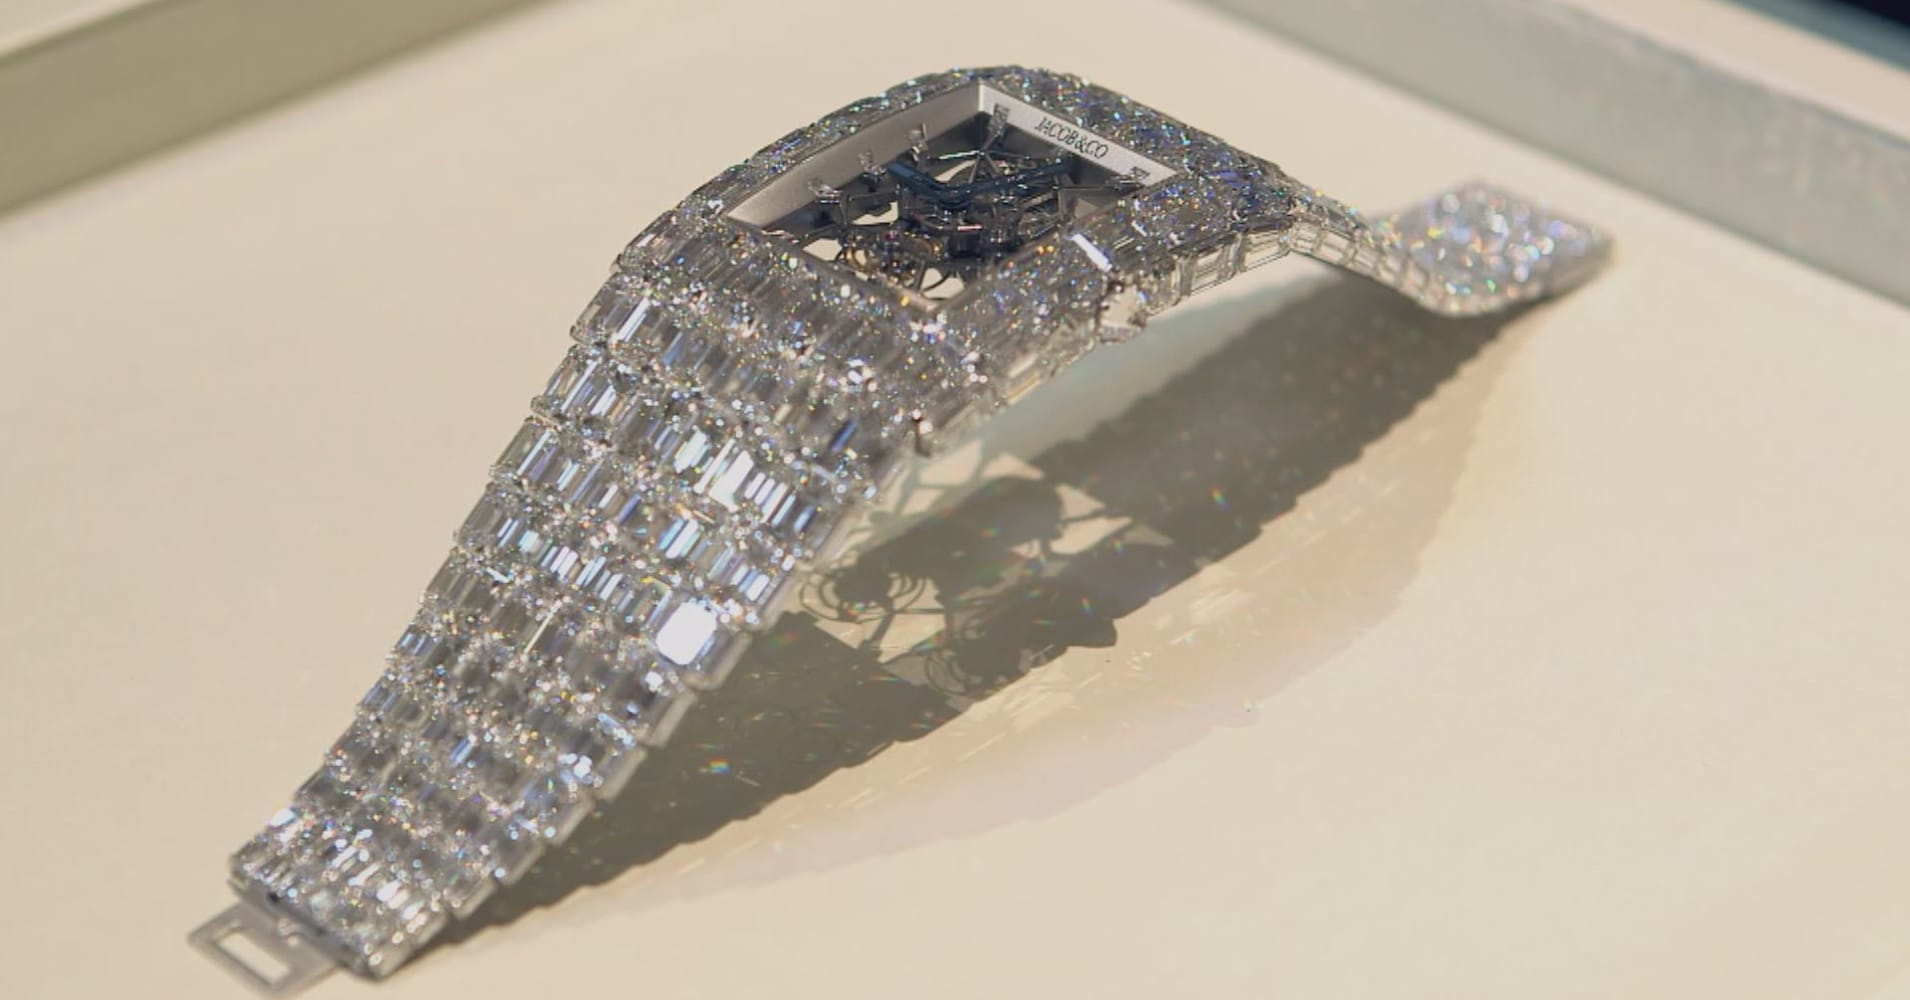 """""""The Billionaire"""" wristwatch made by Jacob & Co is decked out in 260 carats of diamonds and comes with an $18 million price tag."""